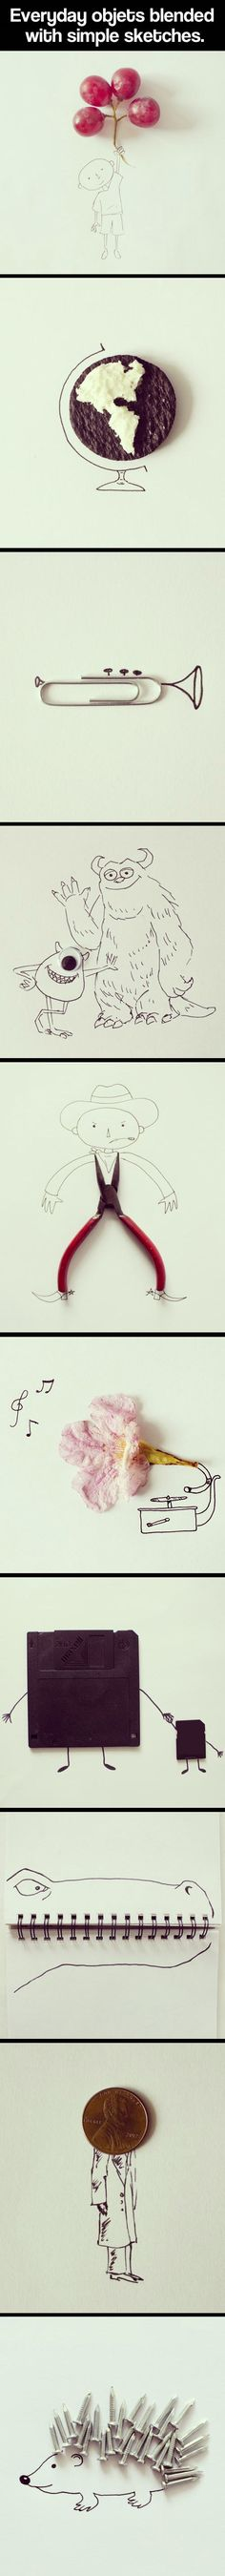 This could be a fun art activity! Everyday objects blended with drawing